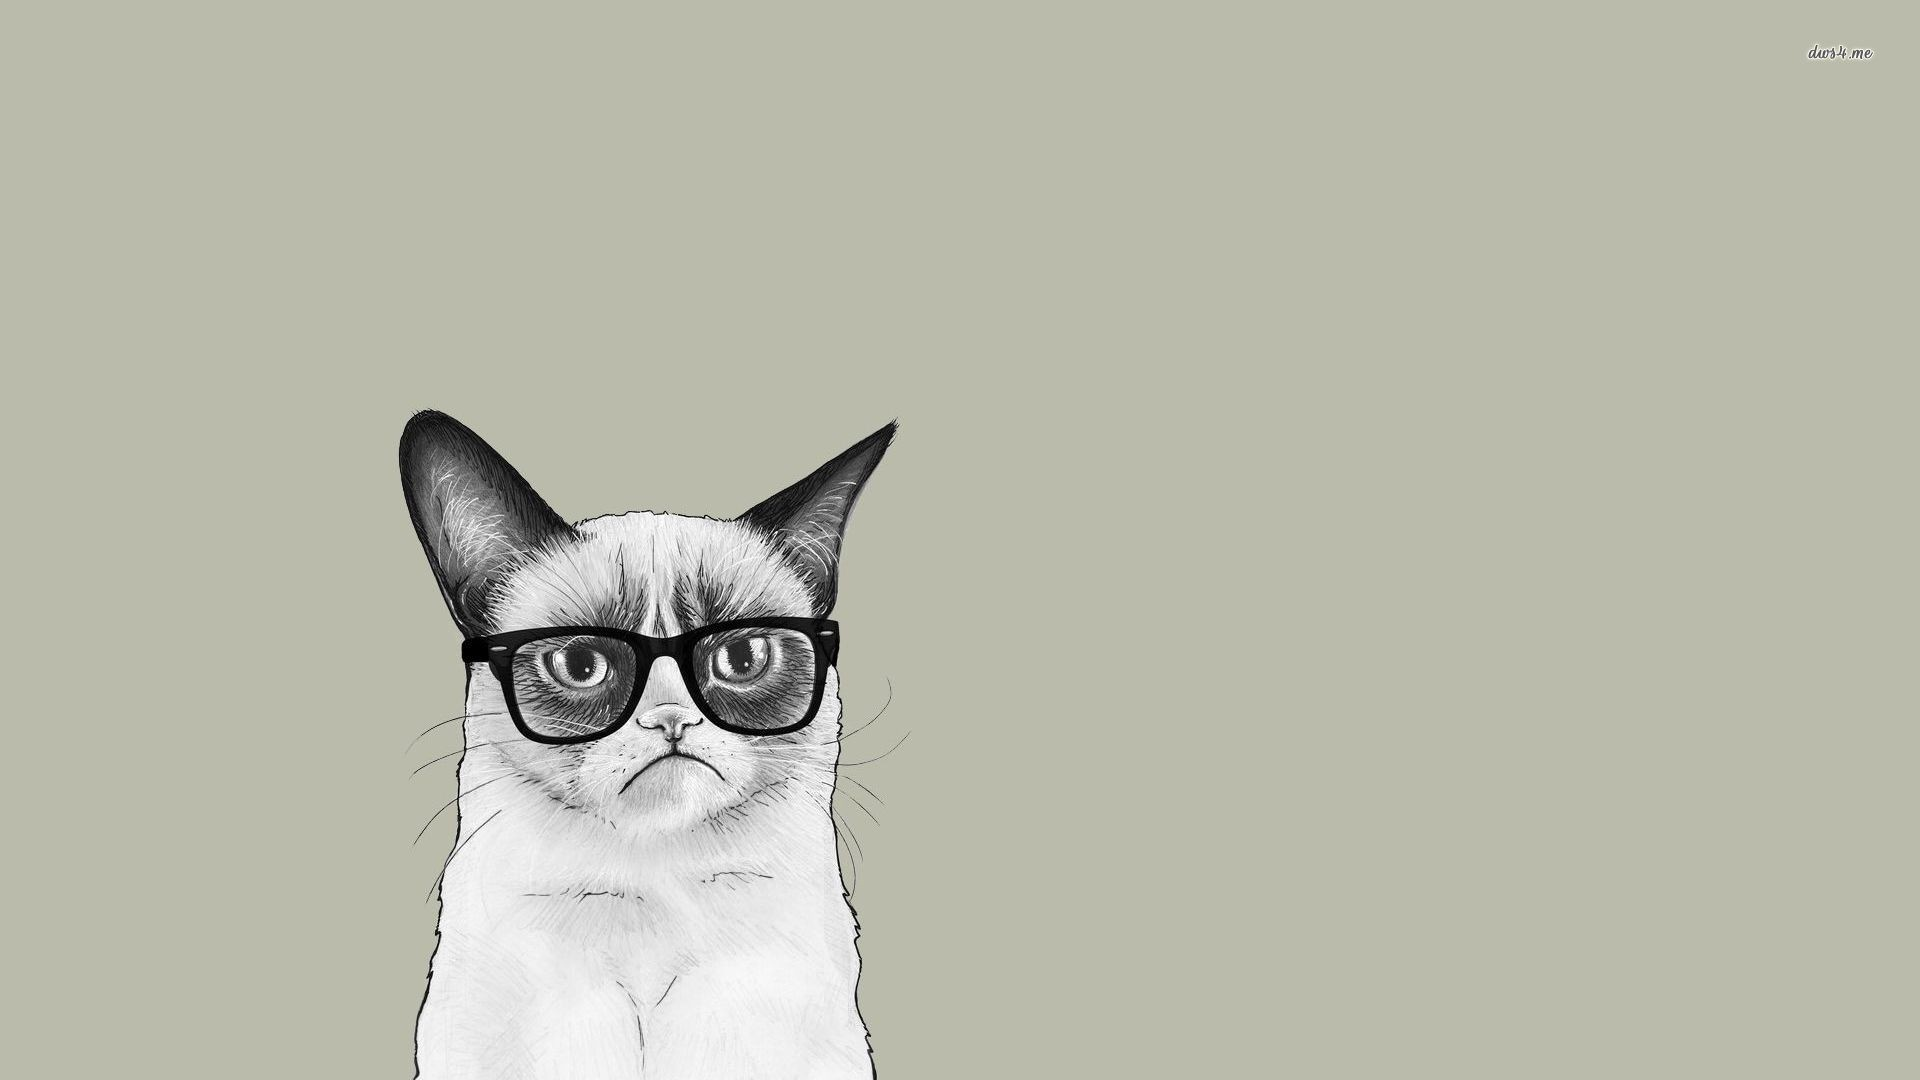 Cat With Glasses wallpaper for pc